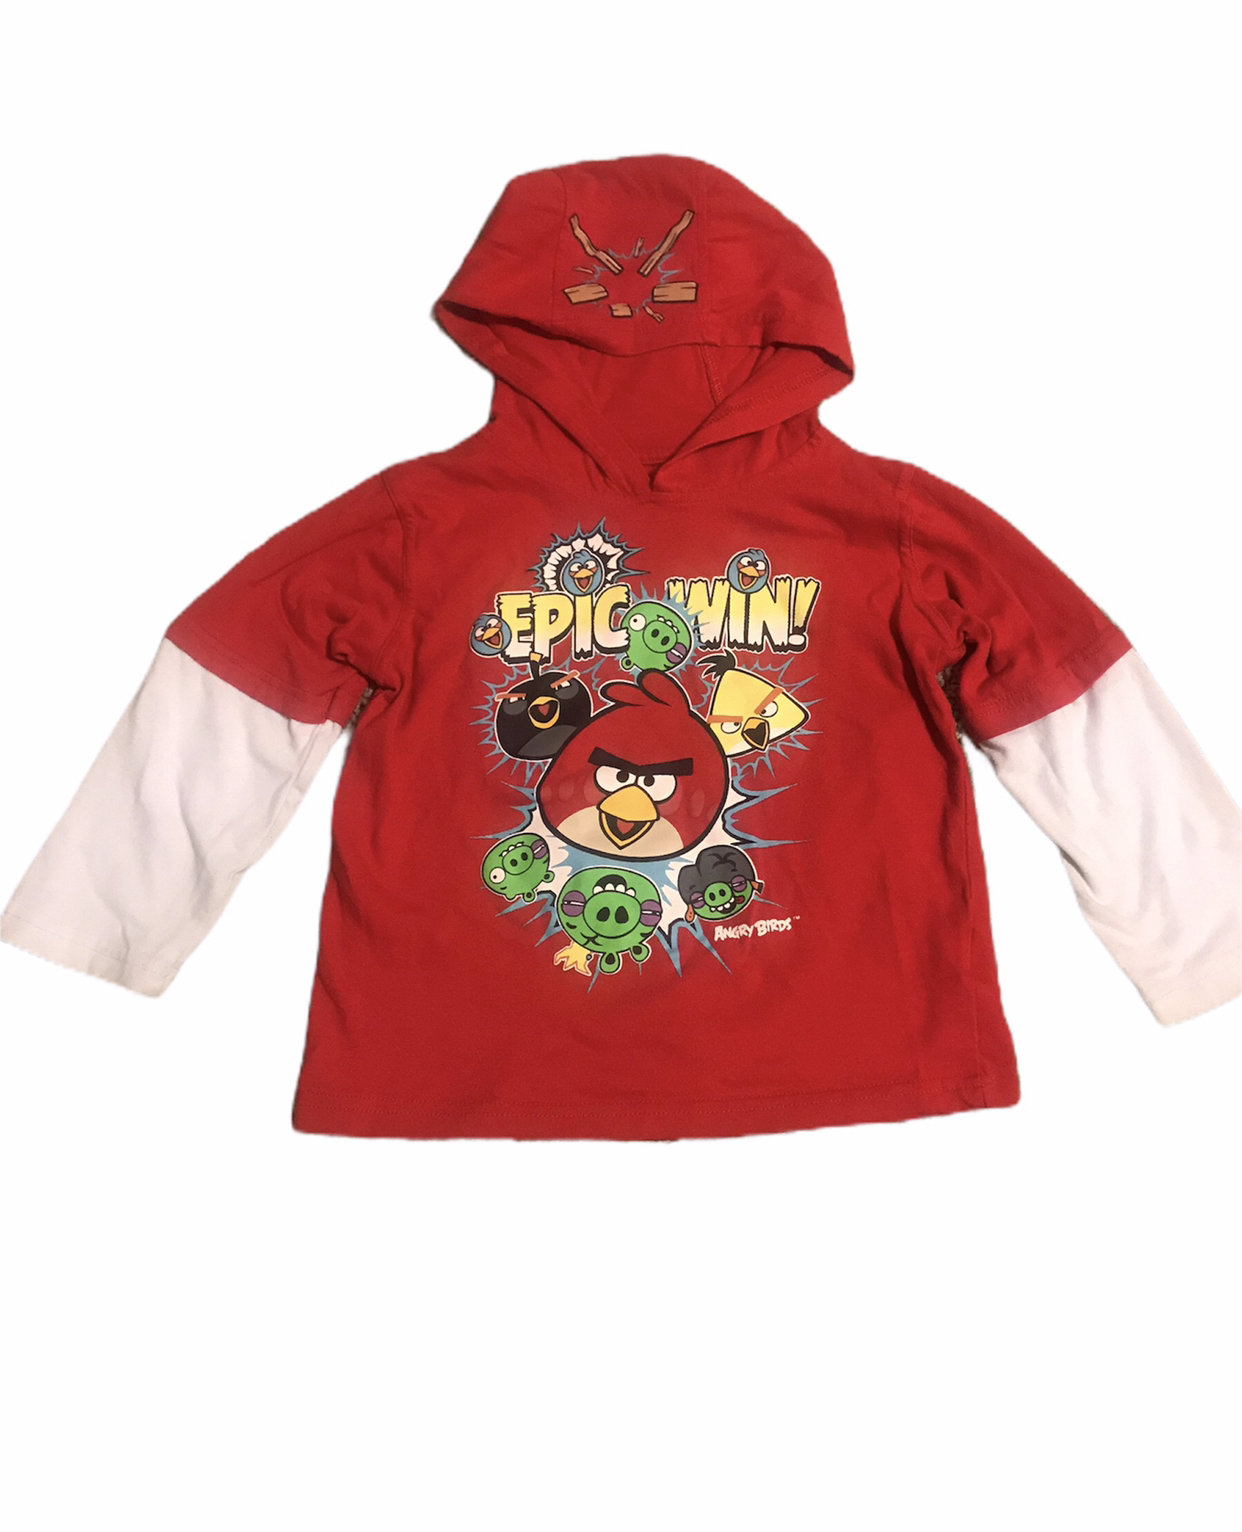 Angry Birds Epic Win Hooded Shirt Size 4